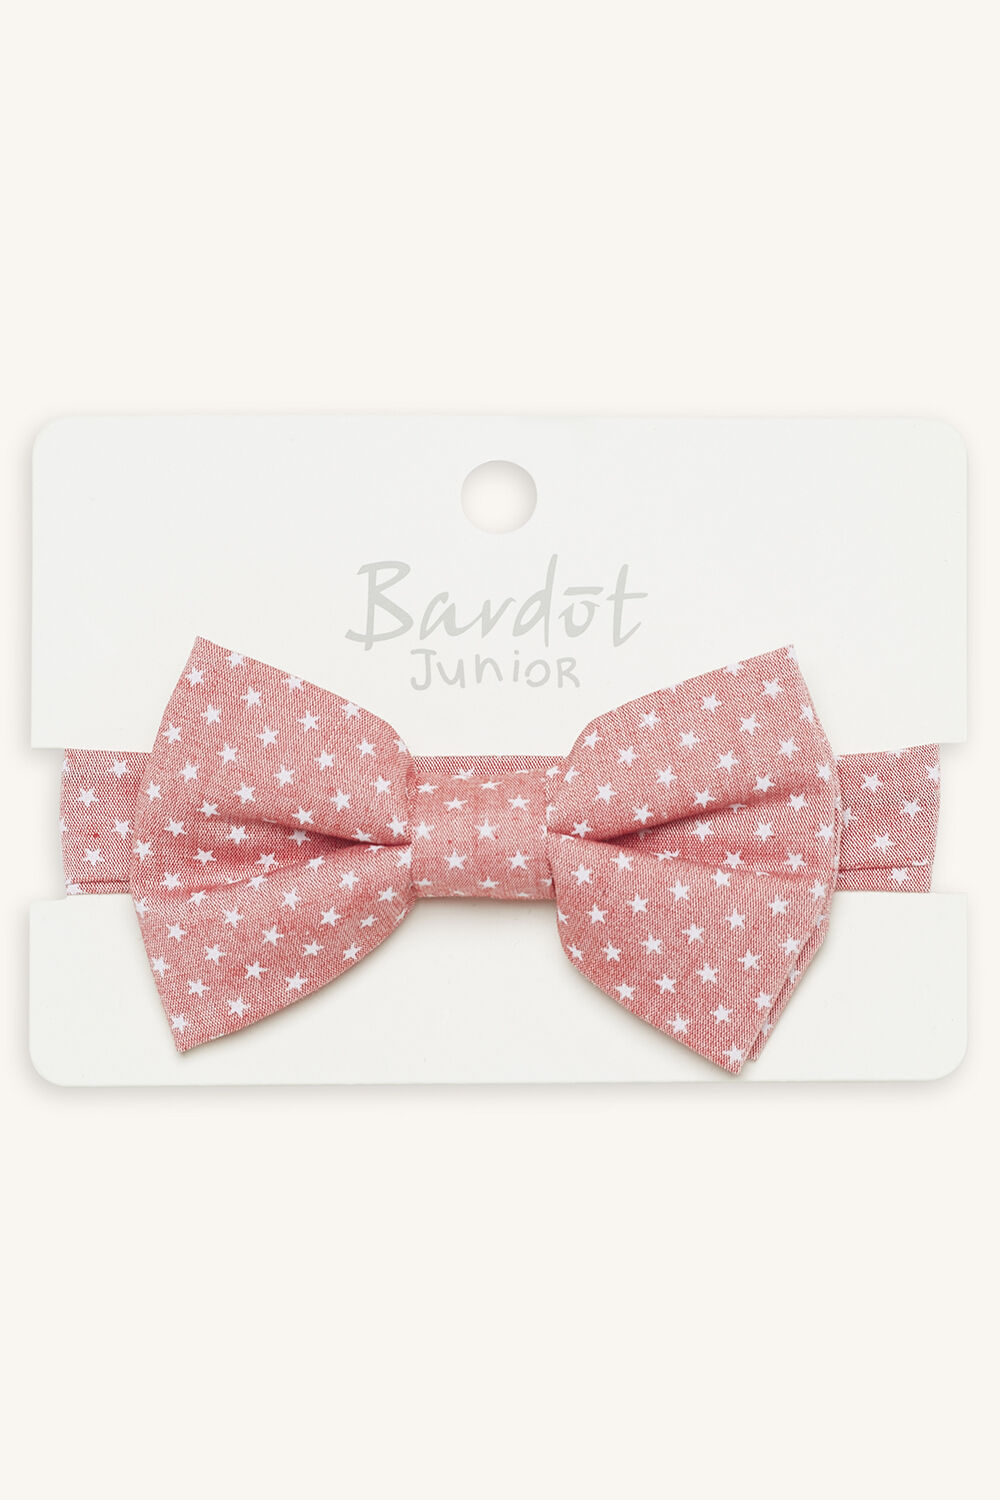 STAR BRIGHT BOW TIE in colour RED BUD